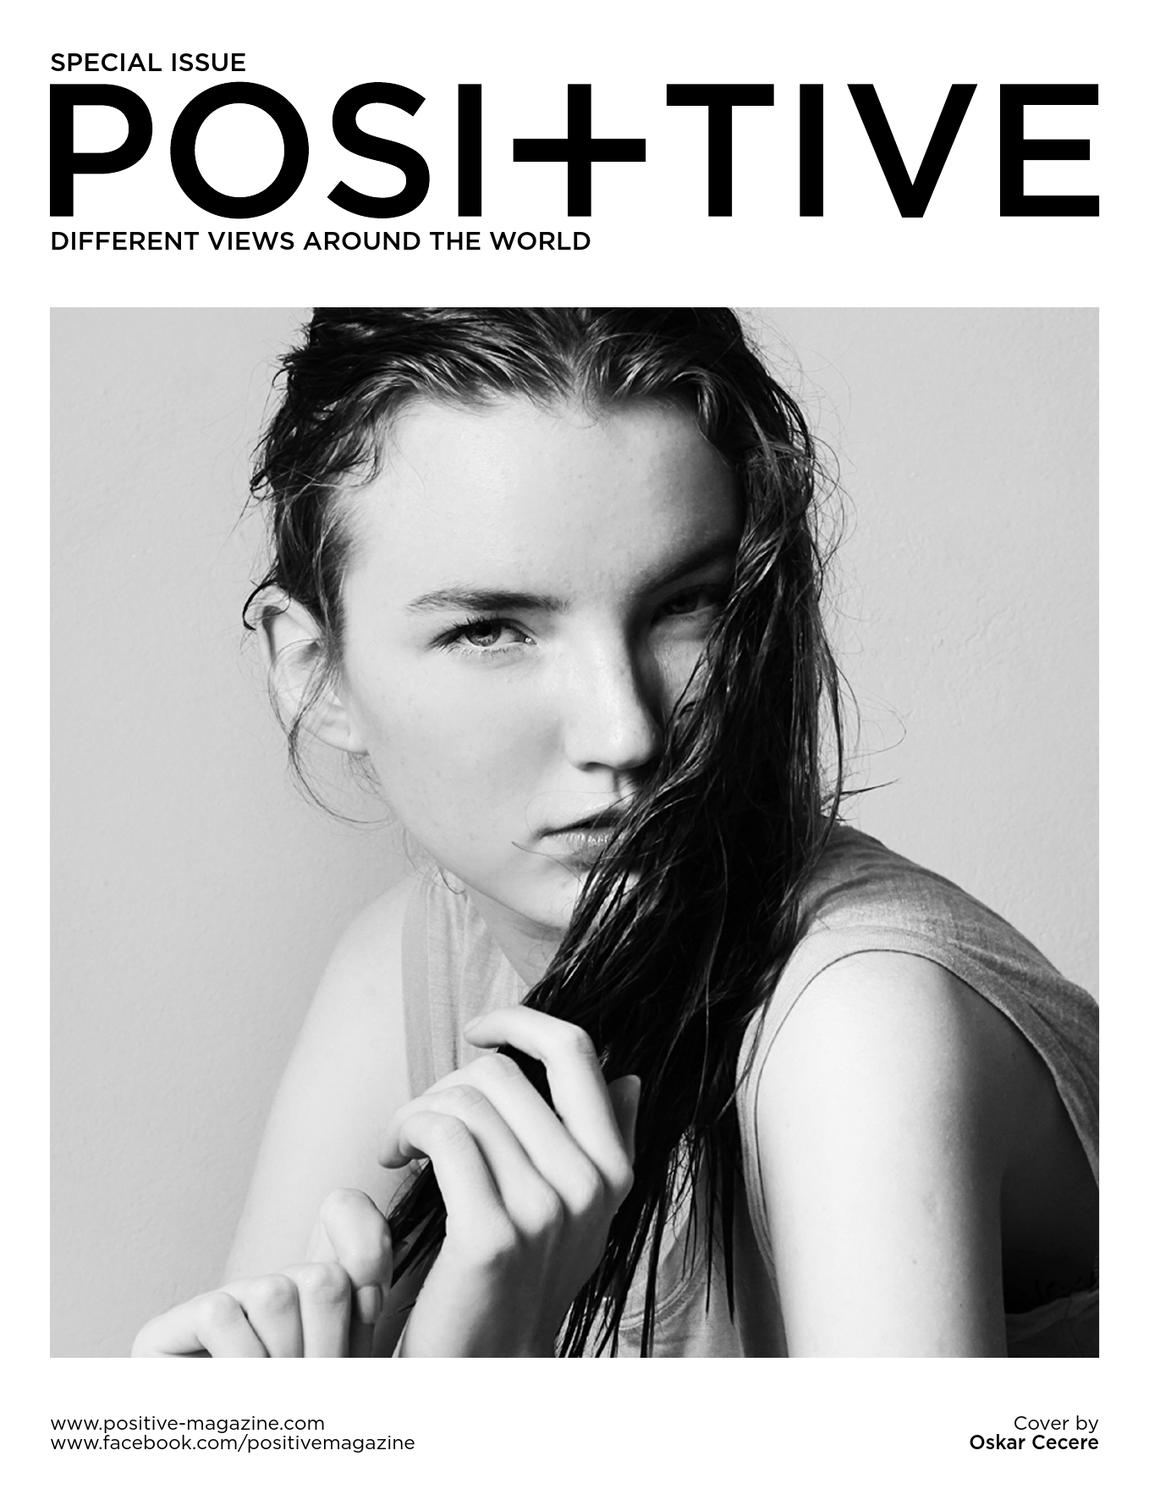 POSI+TIVE MAGAZINE SPECIAL ISSUE